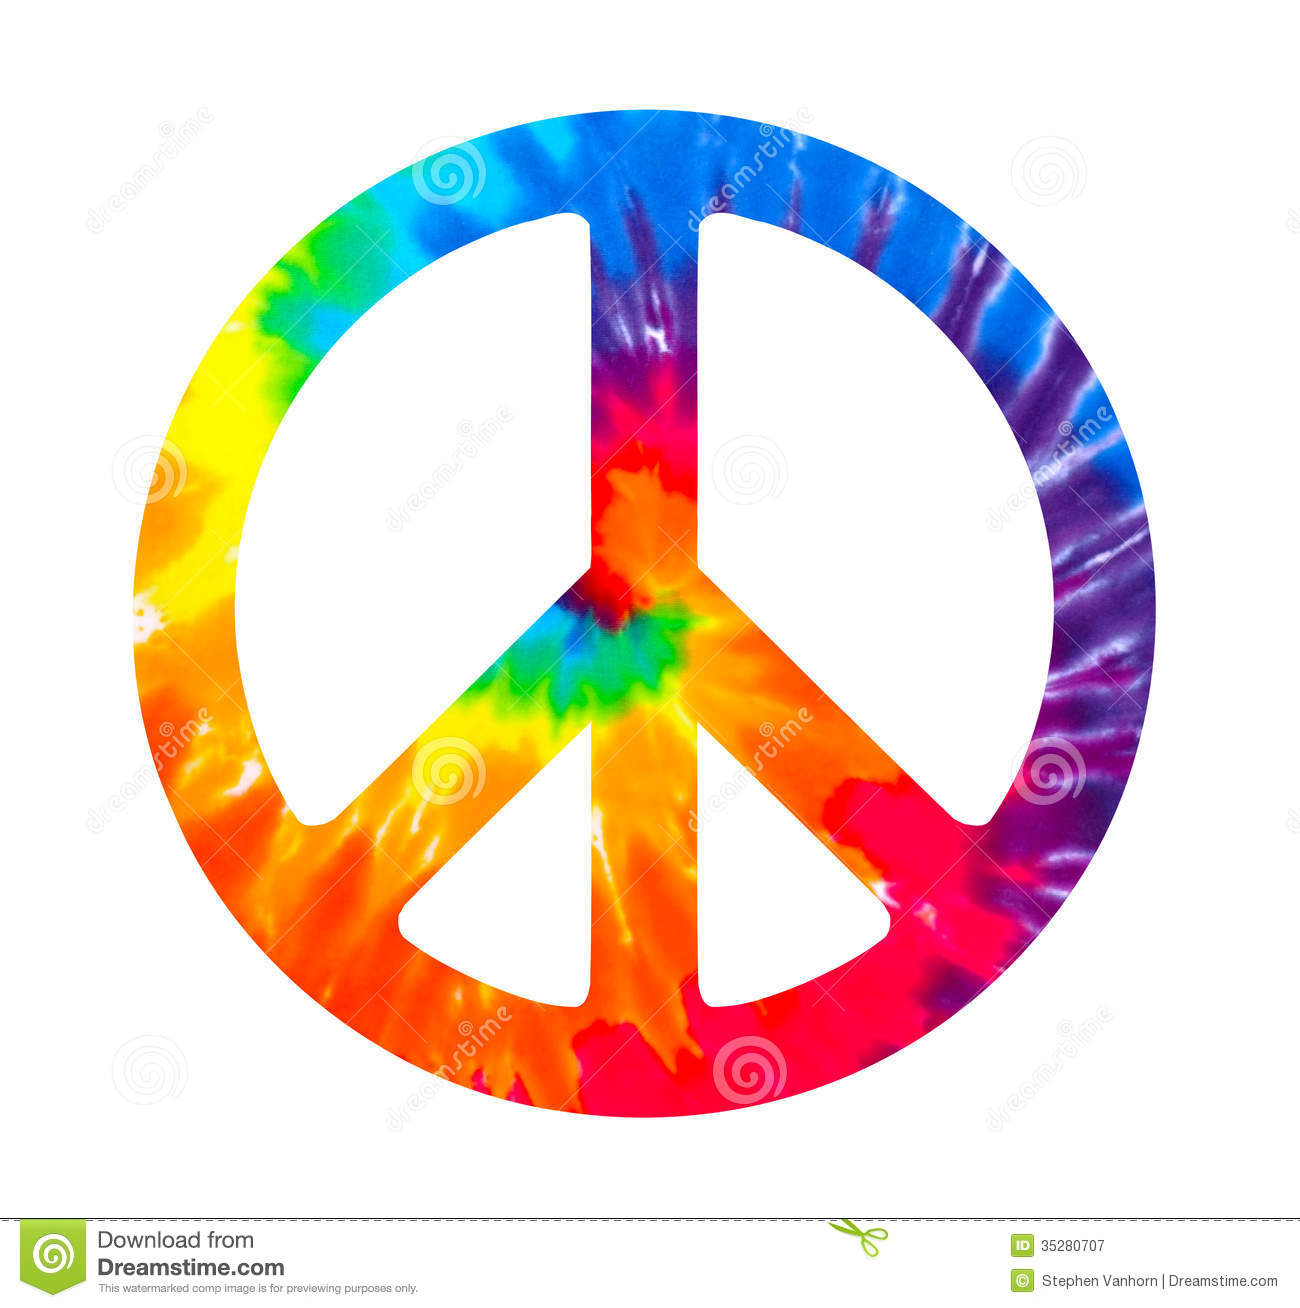 3006 Peace free clipart.